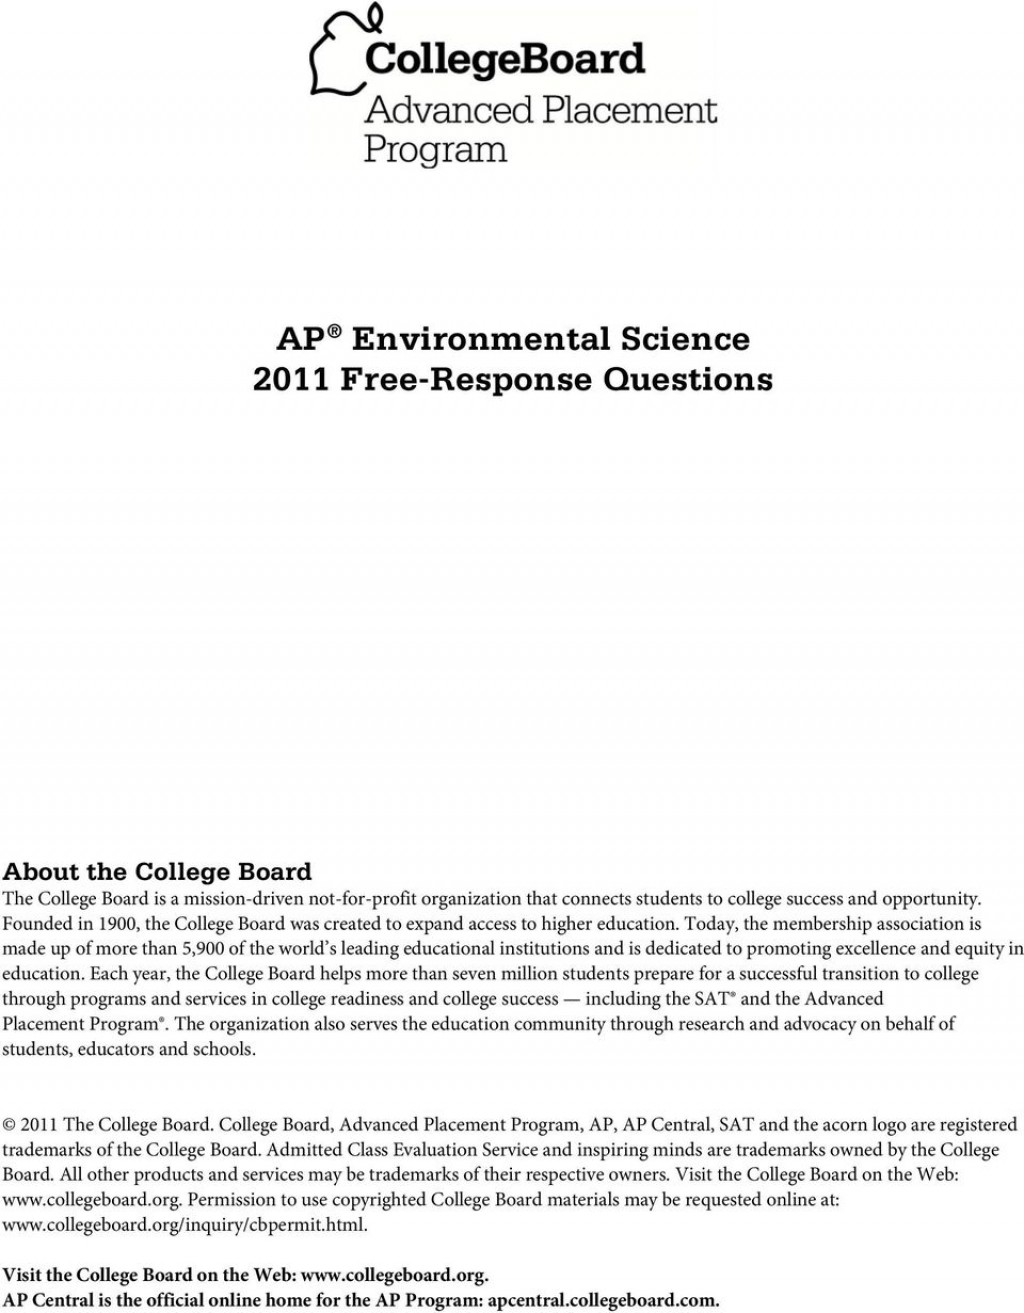 025 Research Paper Page 1 Ap Environmental Science Fearsome Topics Large